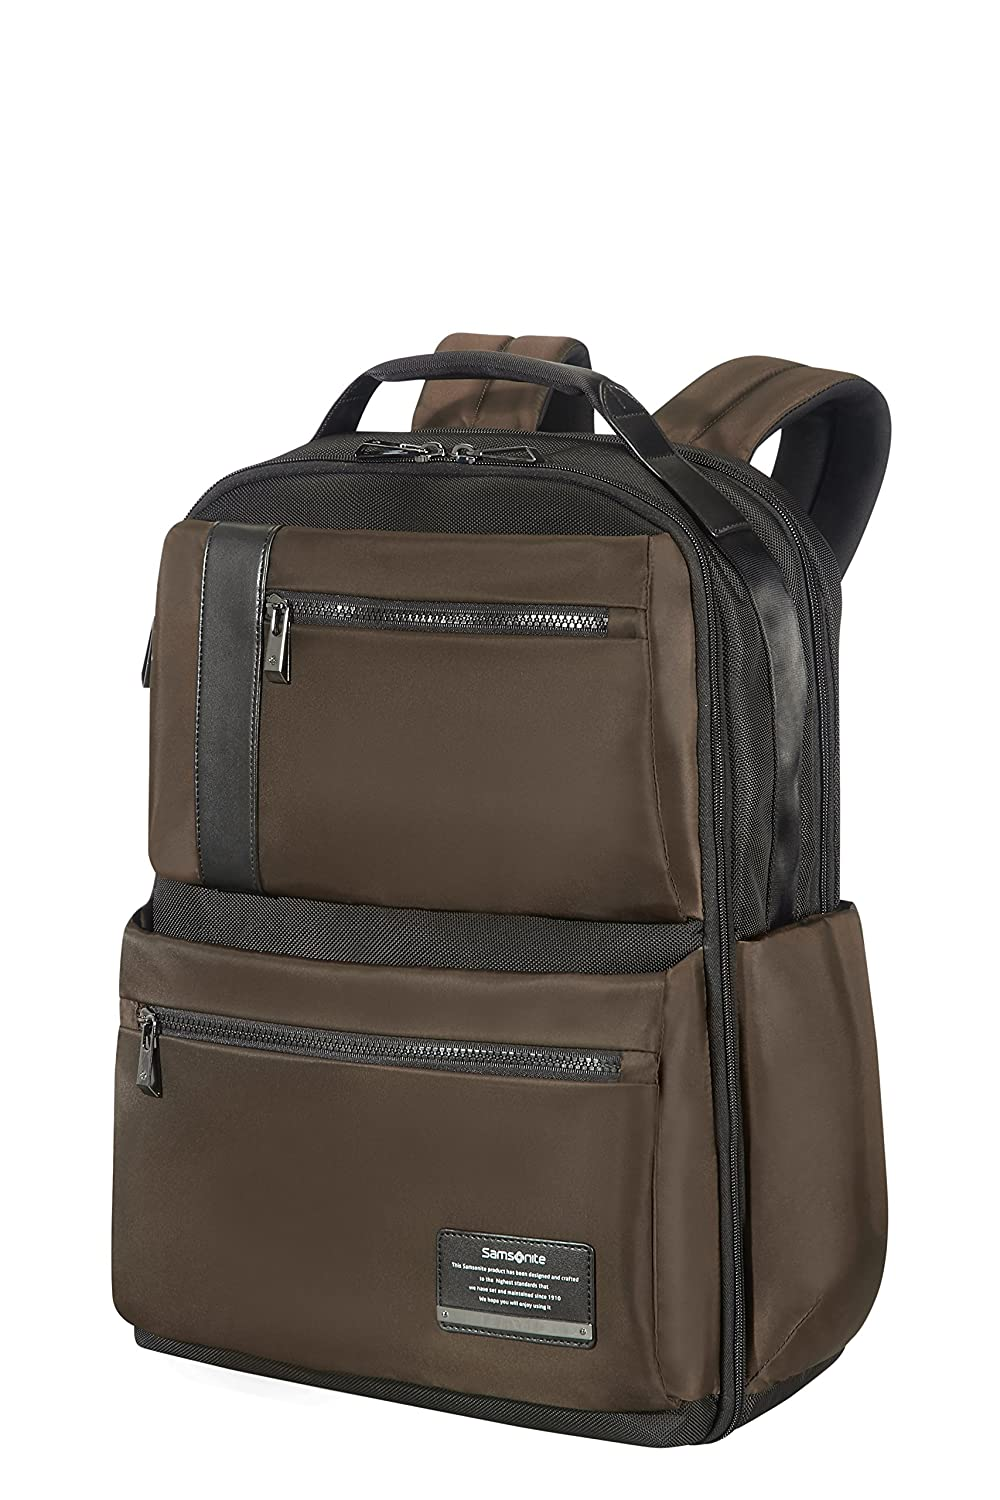 SAMSONITE Openroad - Backpack Slim for 13.3' Laptop 0.8 KG Casual Daypack, 37 cm, 11 liters, Brown (Chestnut Brown)